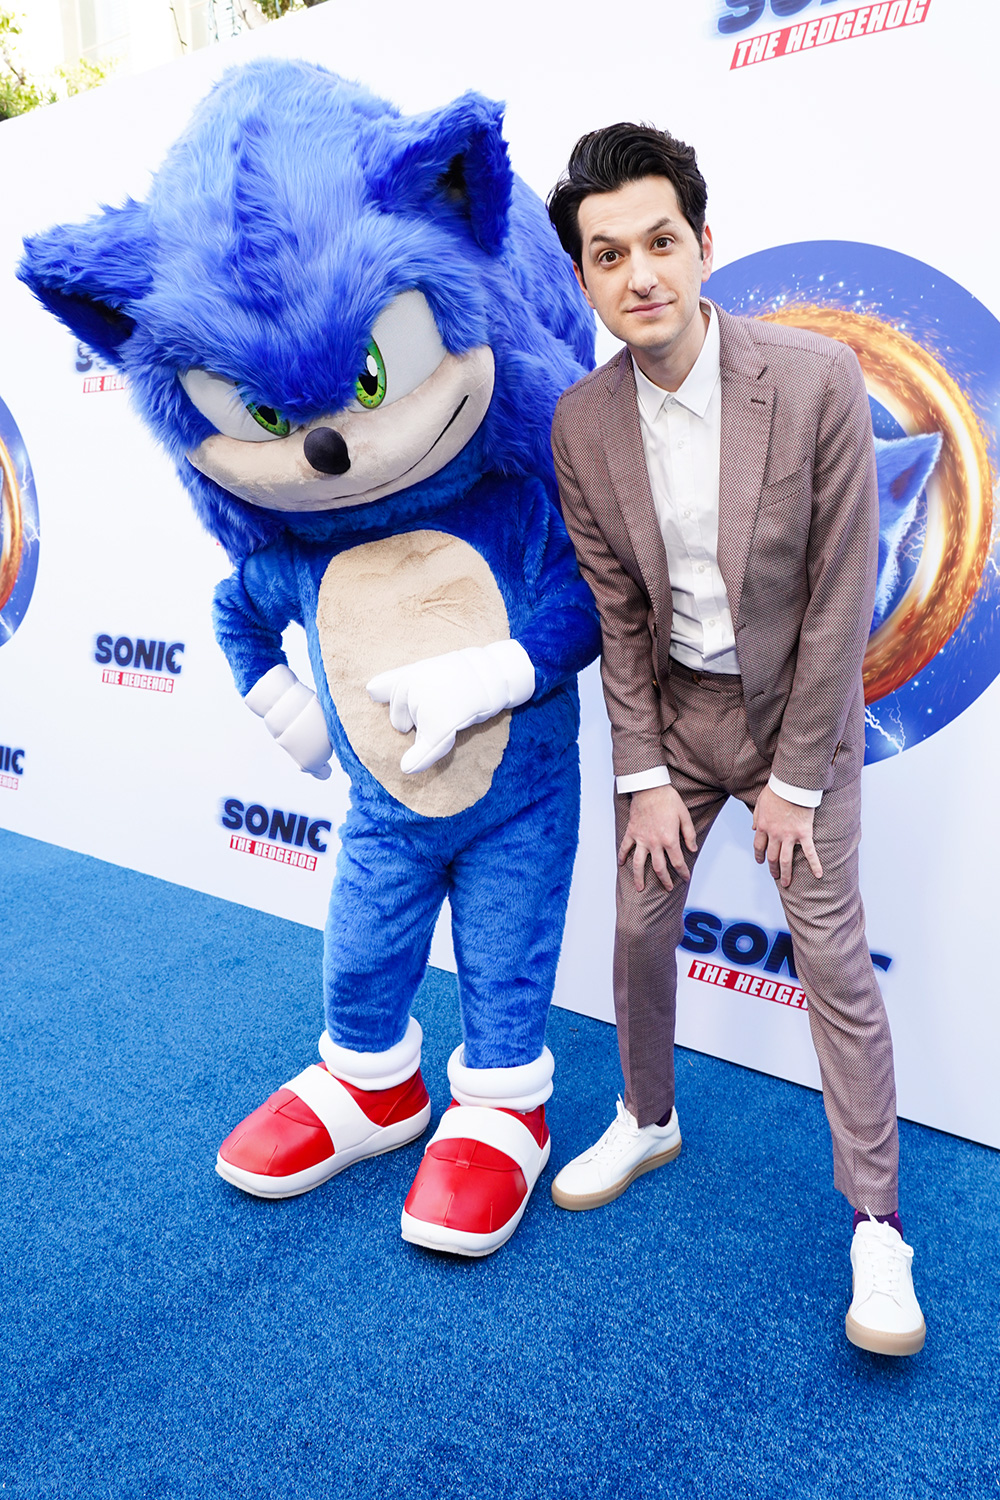 Ben Schwartz (R) and Sonic attend Sonic The Hedgehog Family Day Event at the Paramount Theatre on January 25, 2020 in Hollywood, California